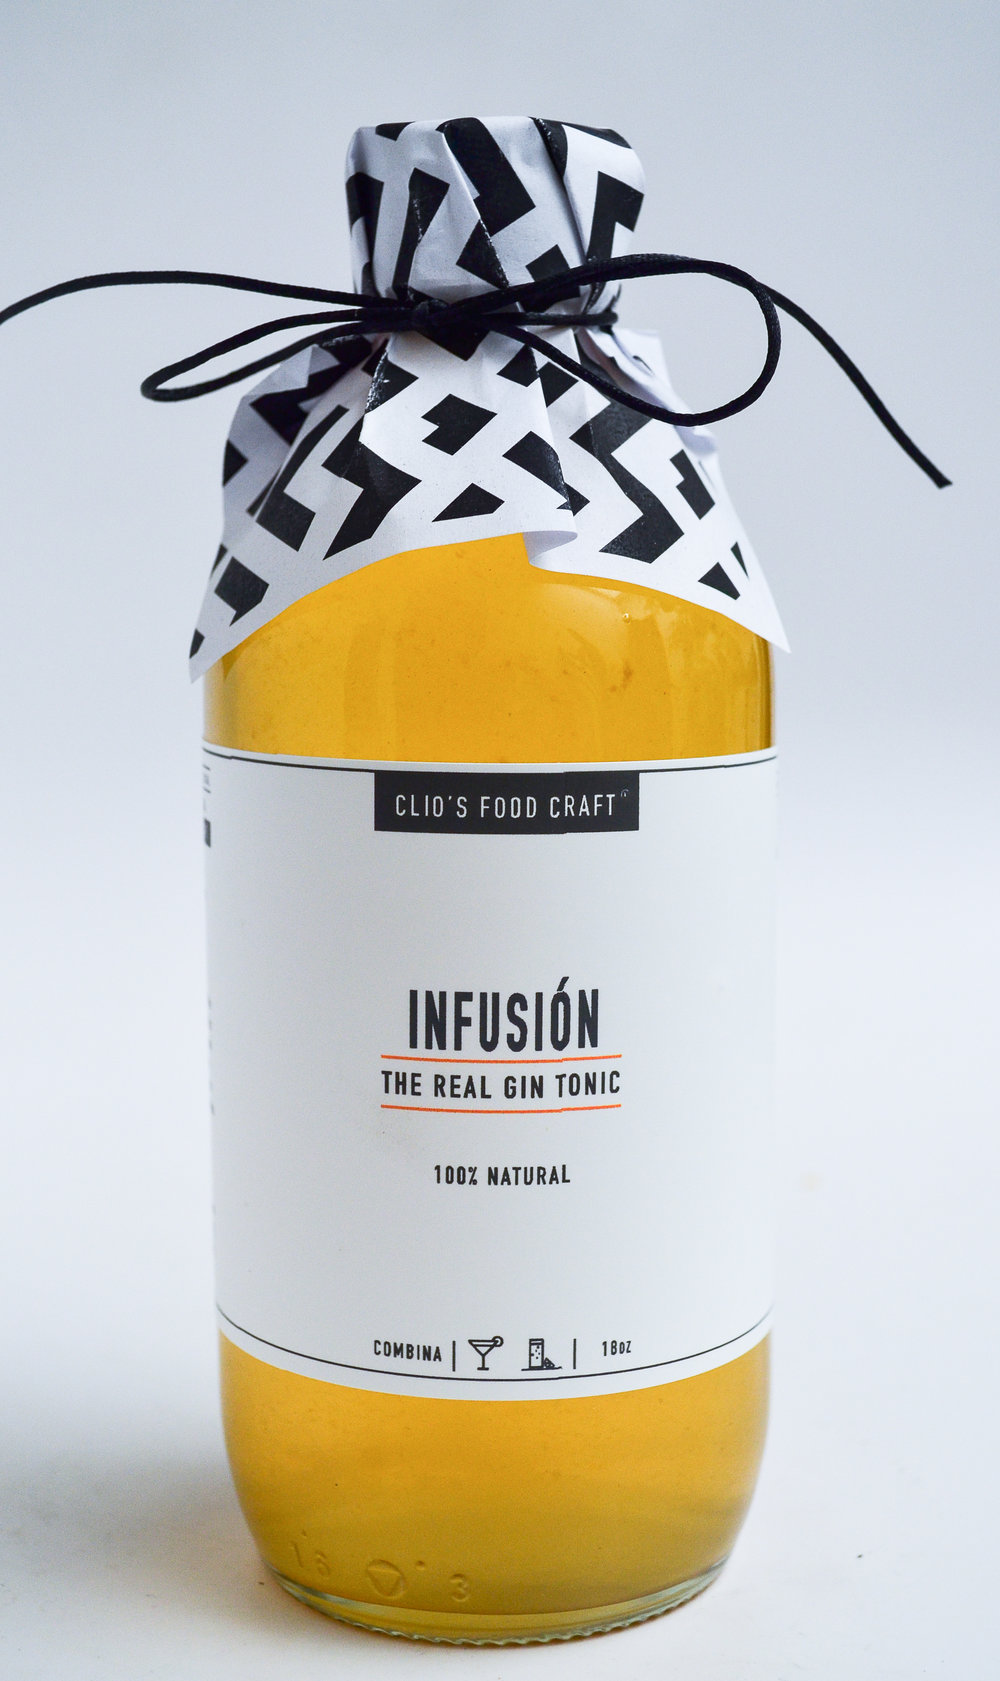 INFUSION THE REAL GIN TONIC - Q.175 18oz